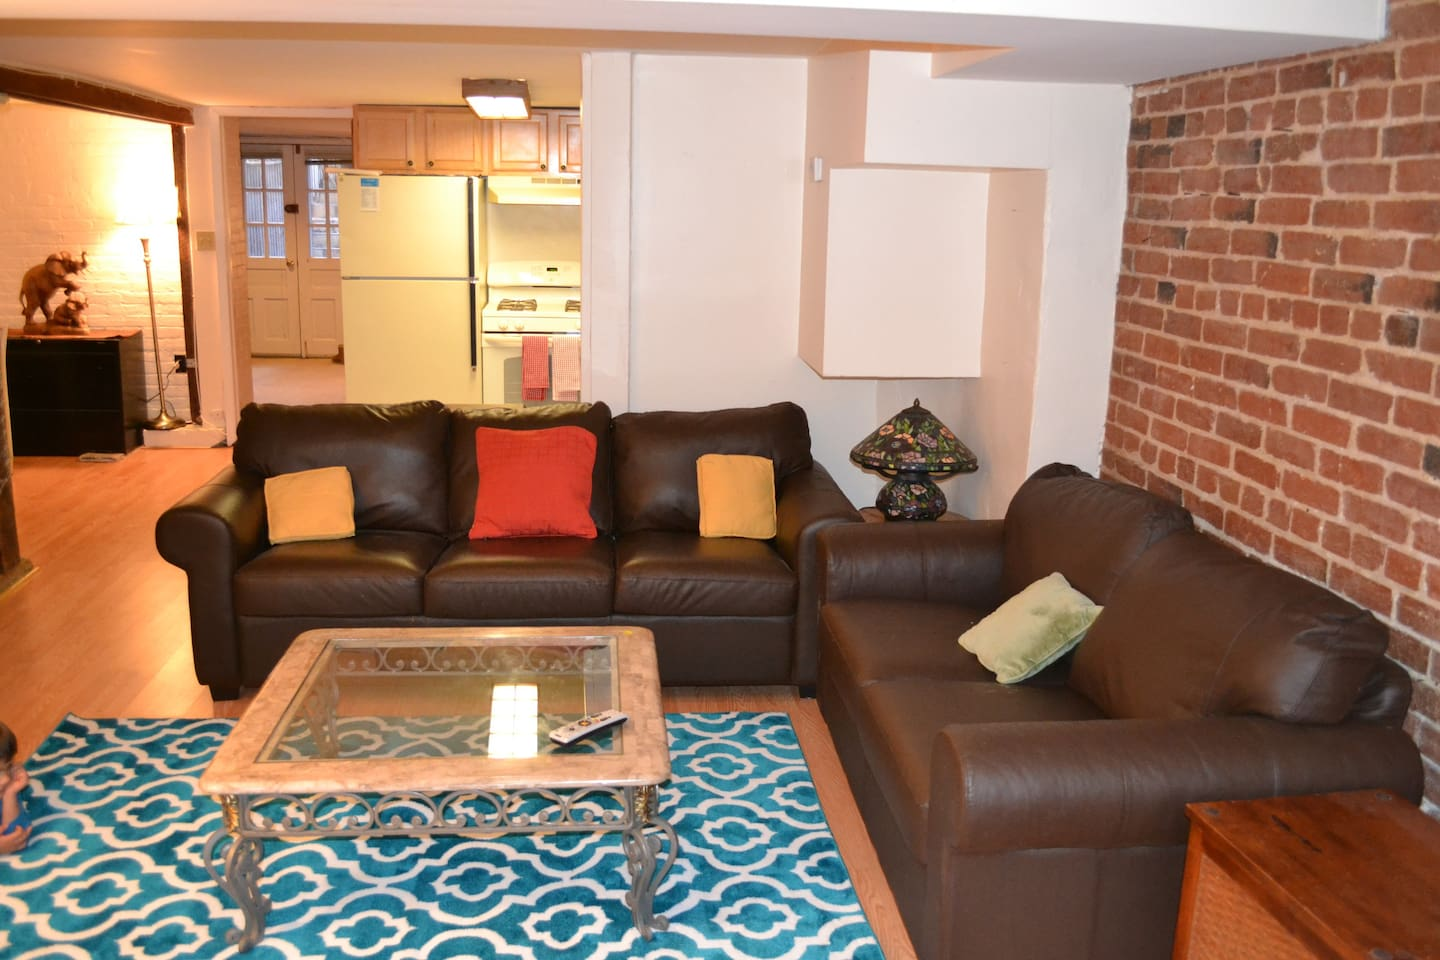 Living Room looking into Kitchen